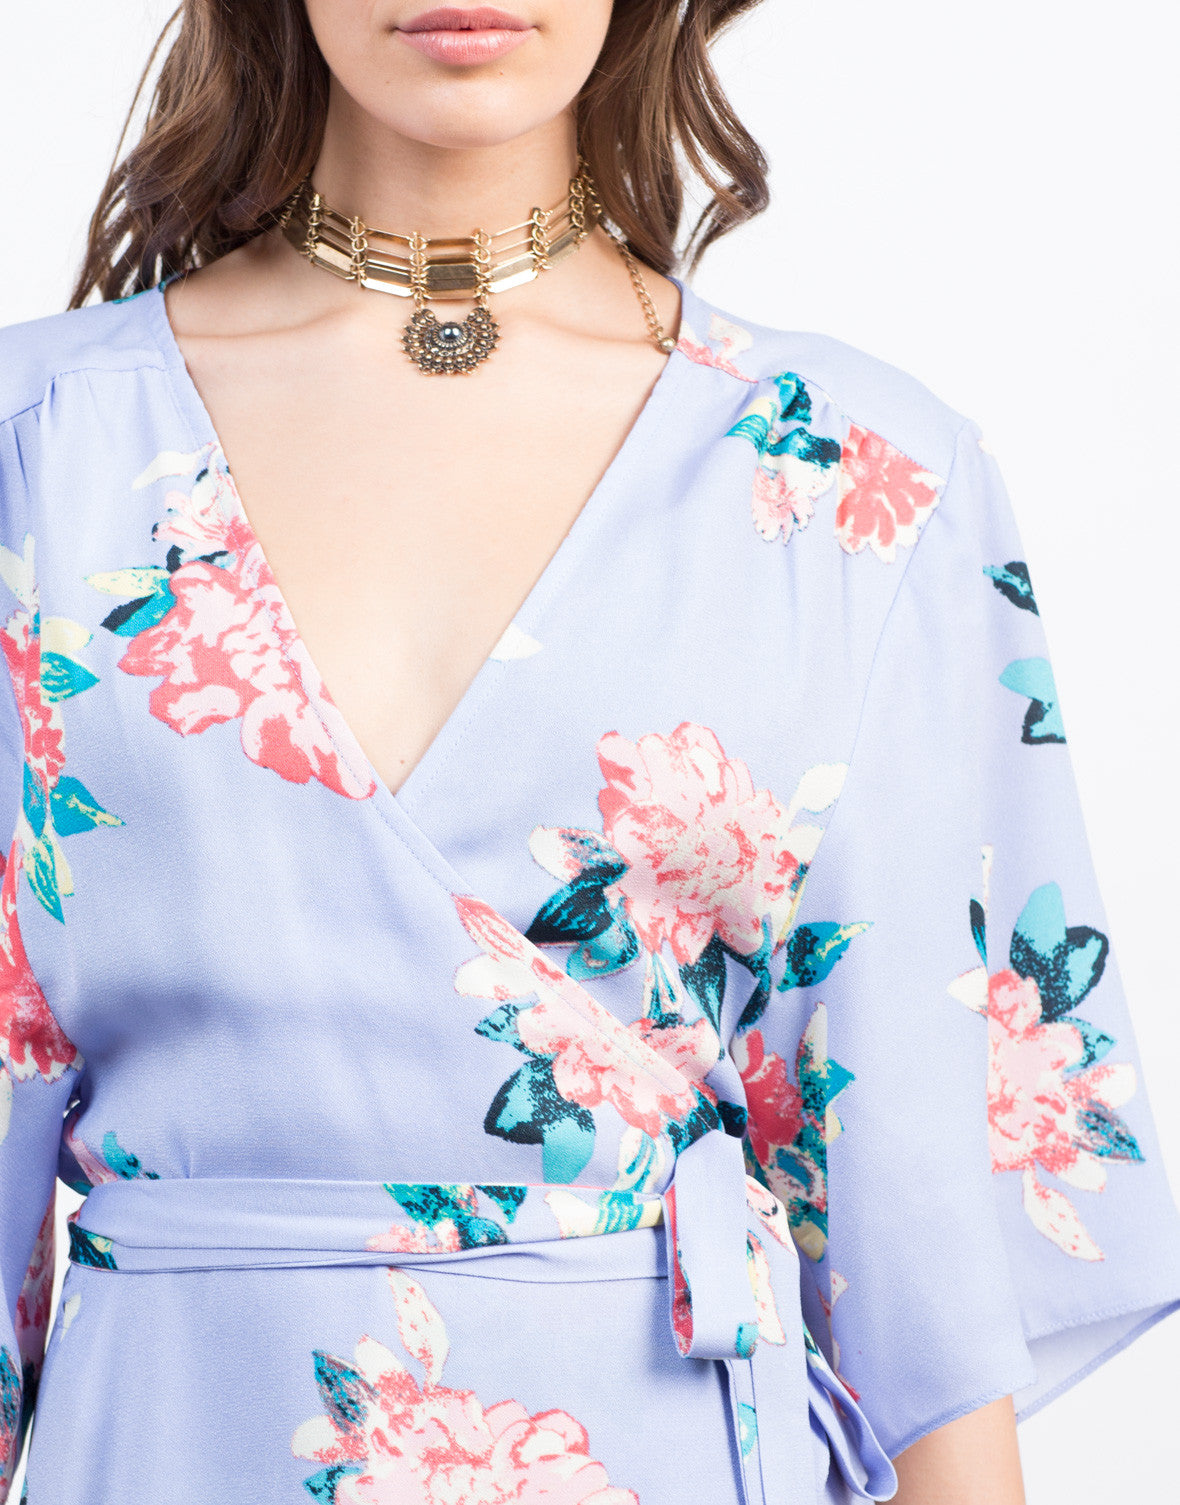 Detail of Floral Kimono Wrap Dress